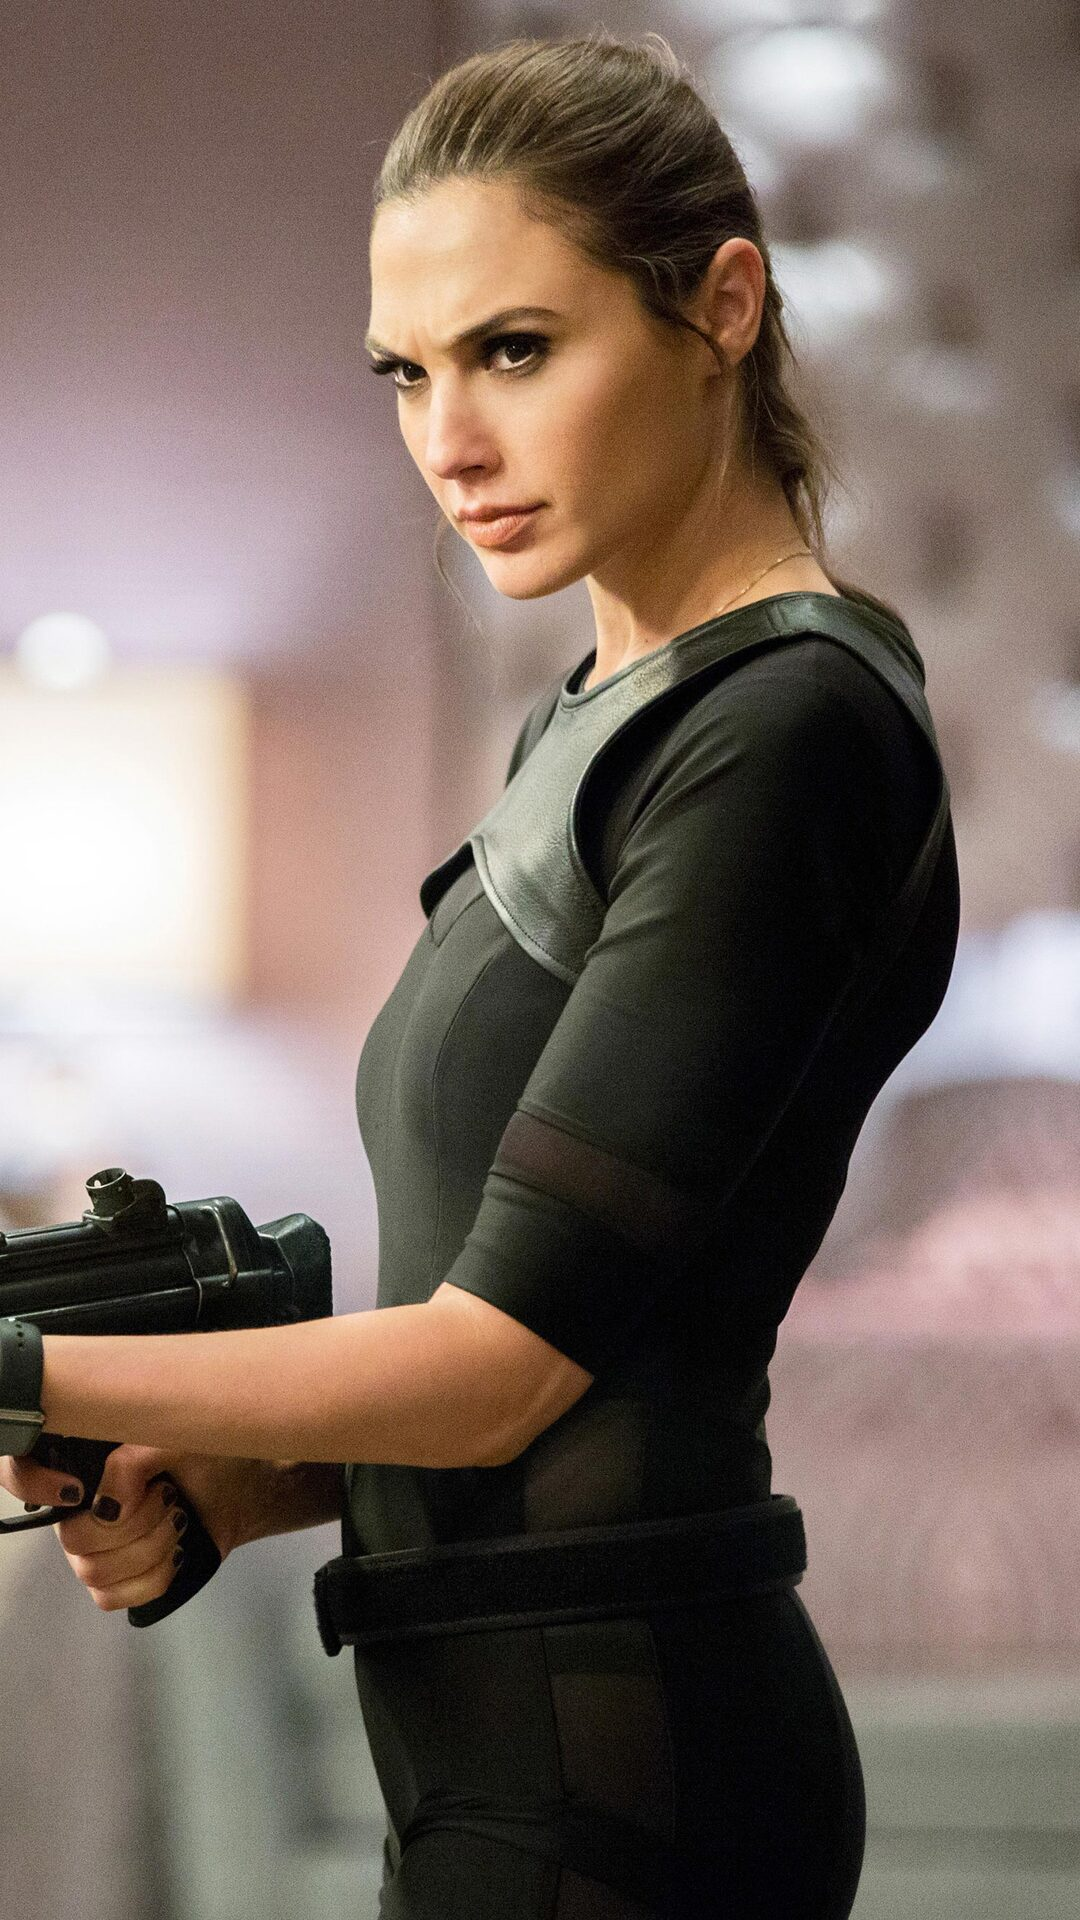 Criminal Girls Wallpaper 1920 1080x1920 Gal Gadot In Keeping Up With The Joneses Iphone